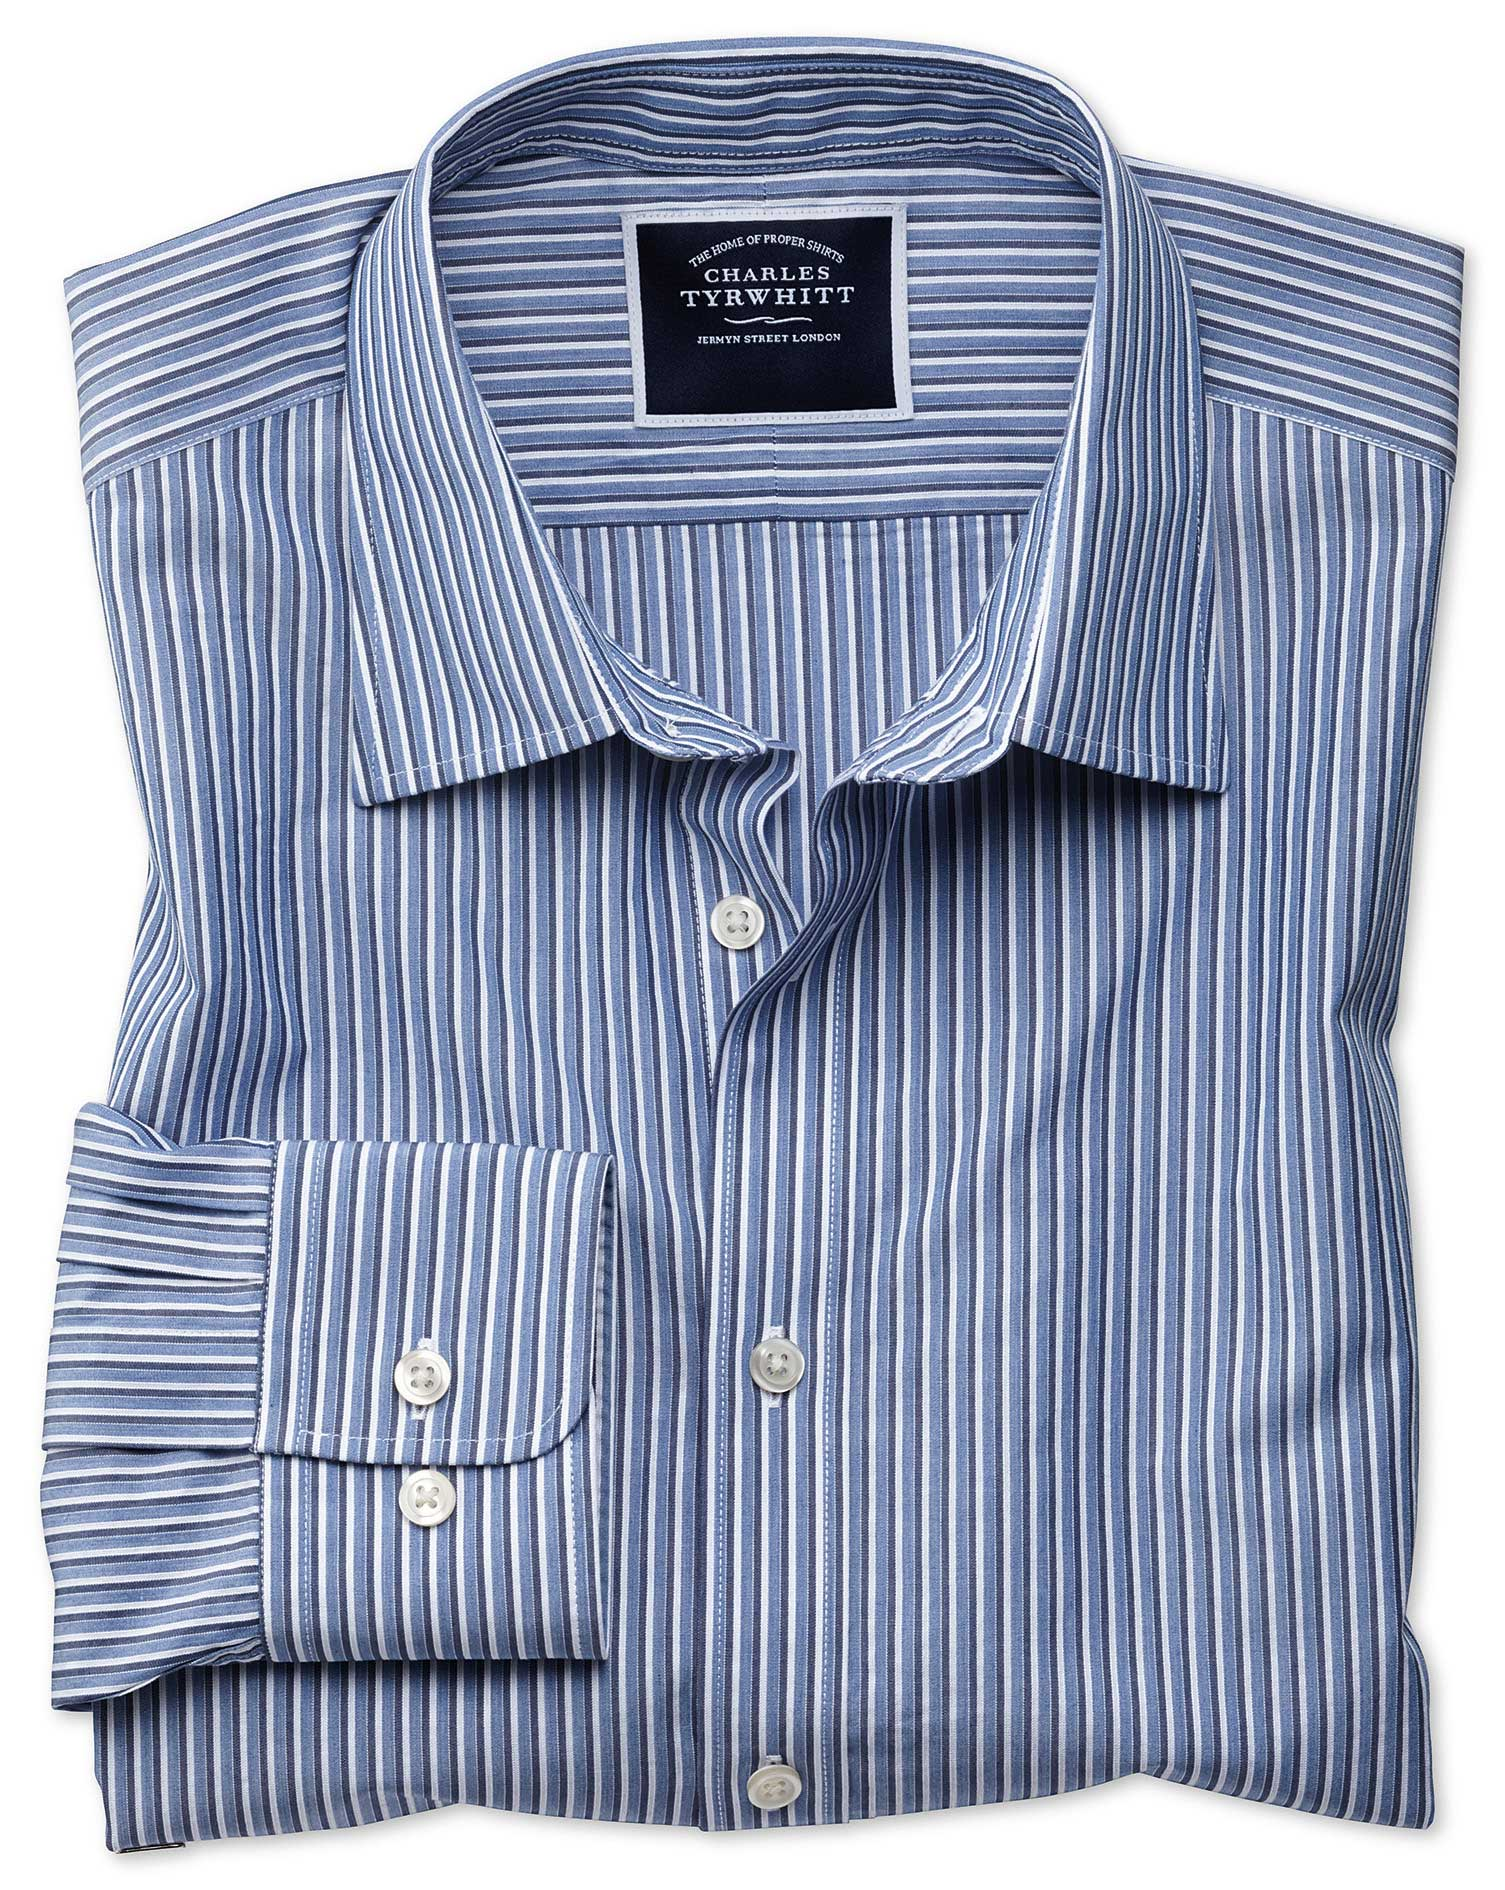 Classic Fit Blue Stripe Soft Washed Cotton Shirt Single Cuff Size Large by Charles Tyrwhitt from Charles Tyrwhitt